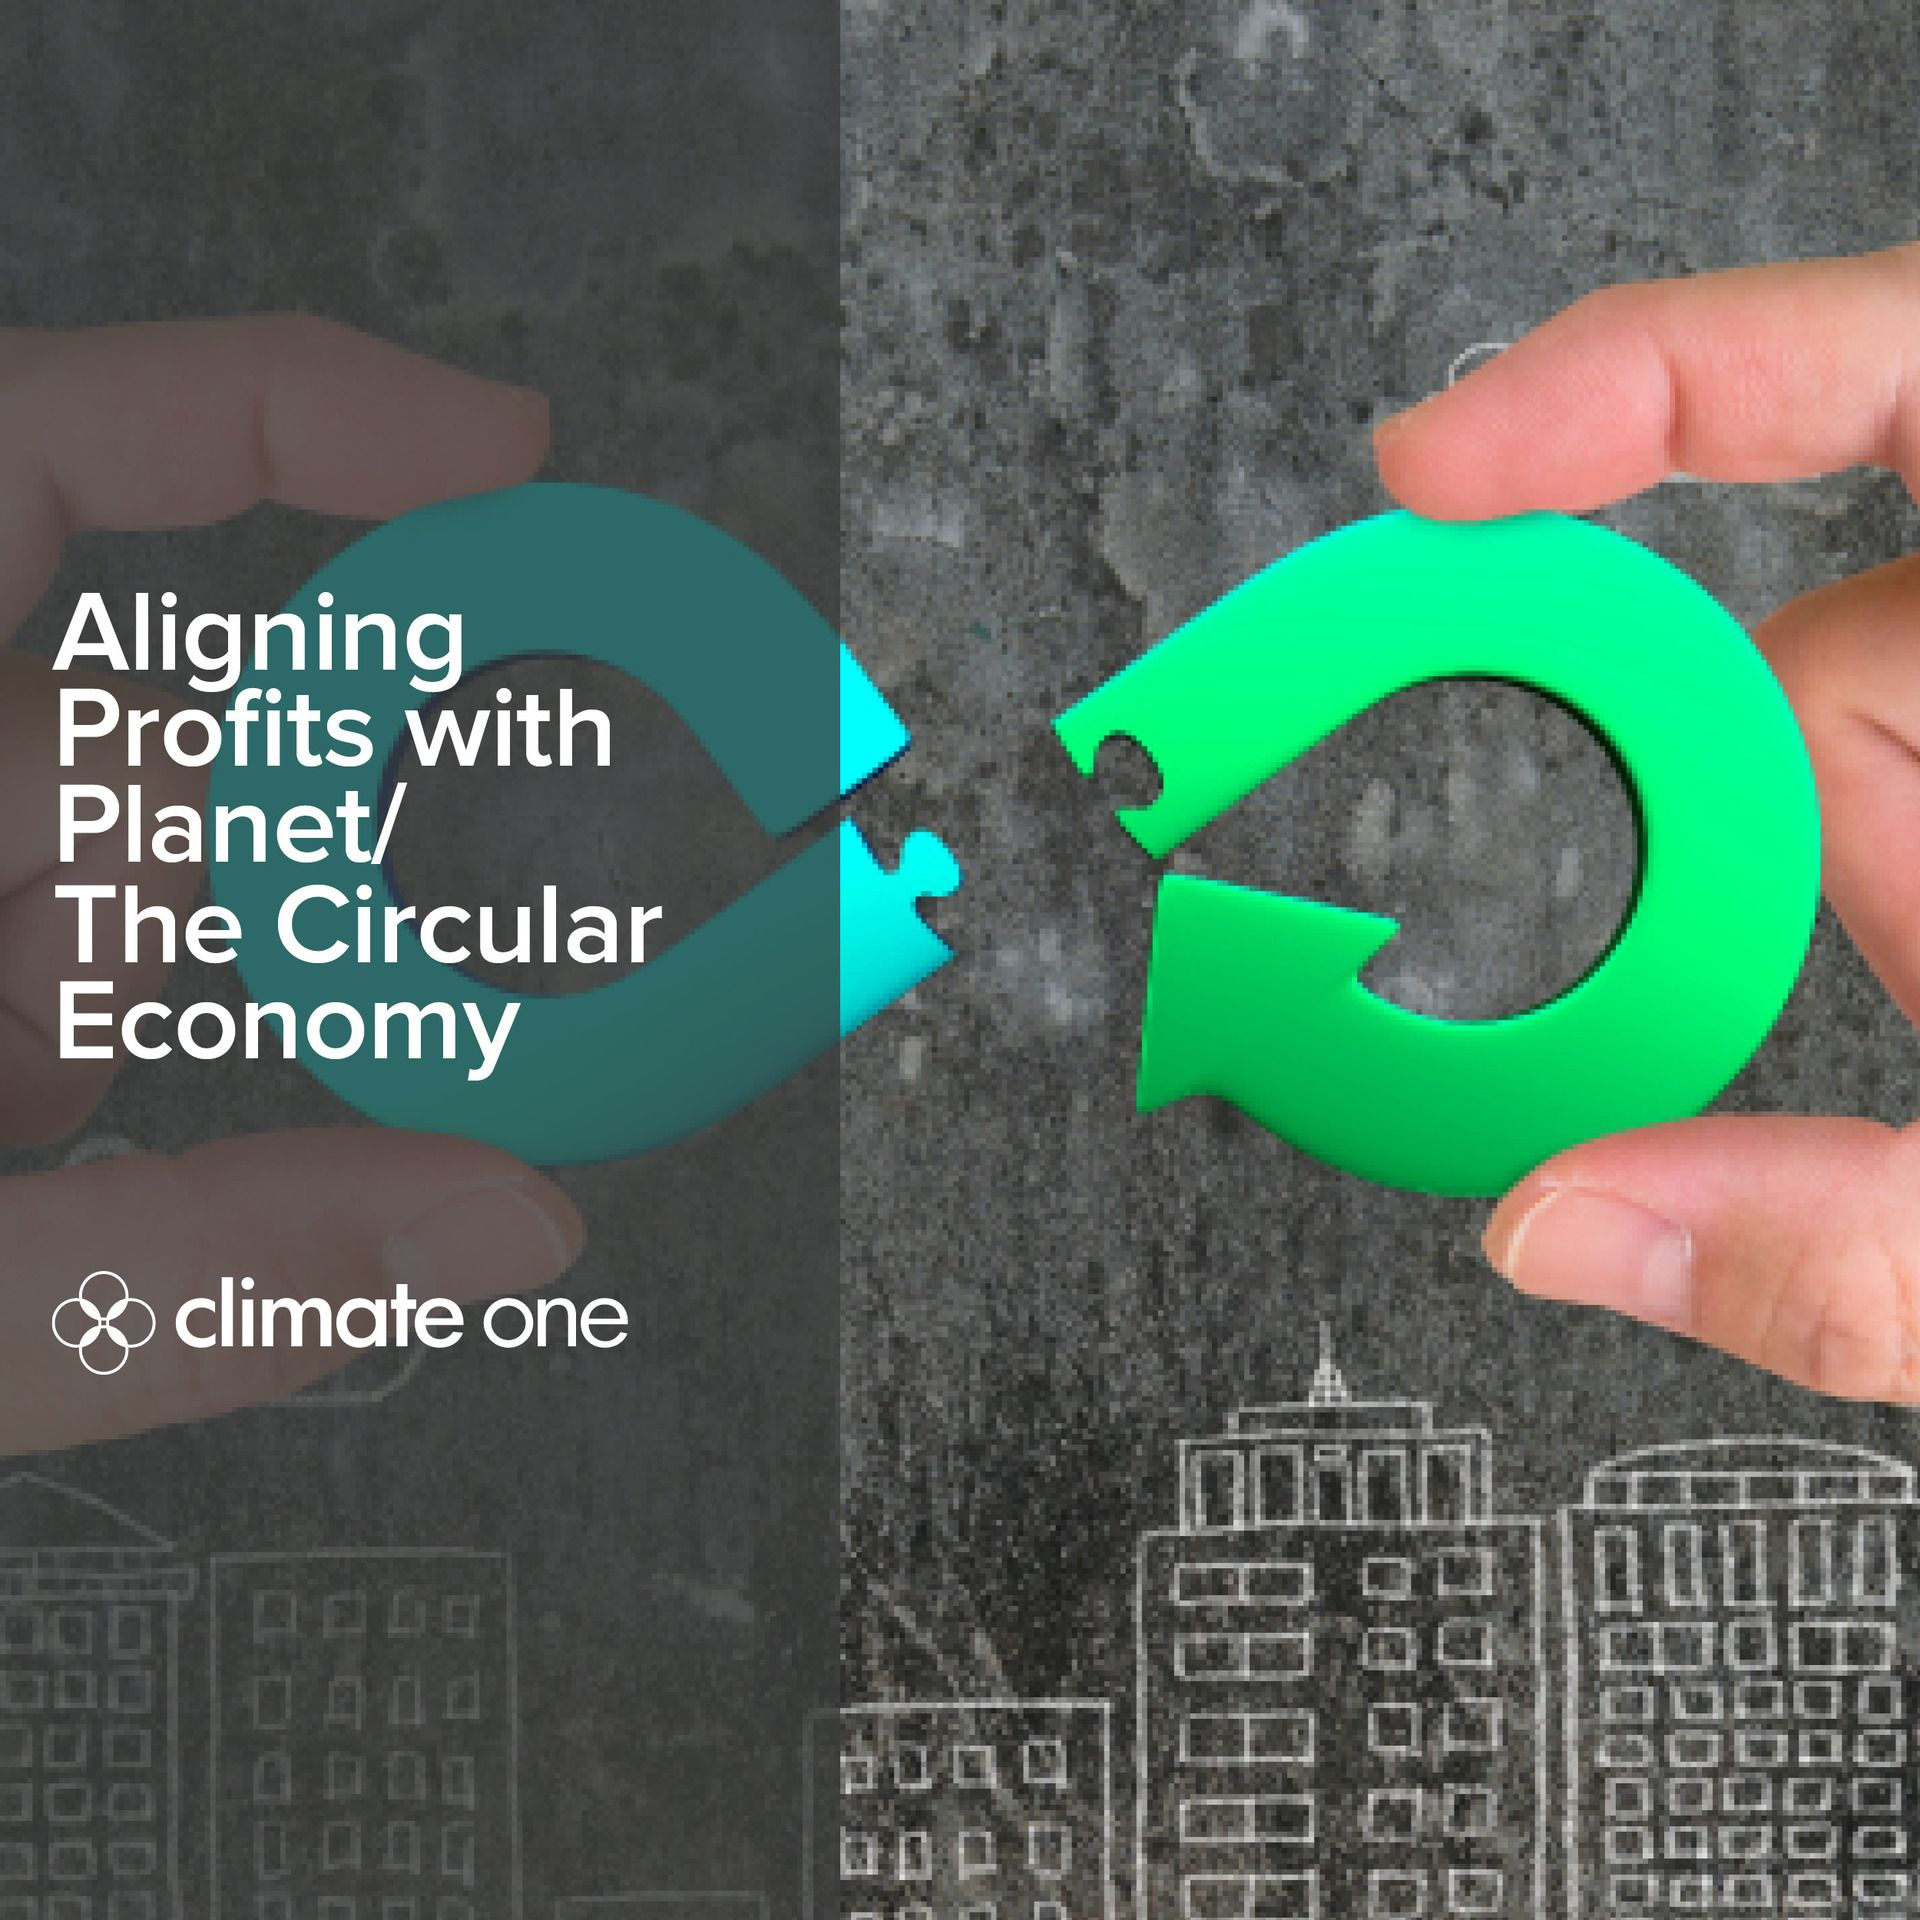 climate one twitter Profits or planet circular economy